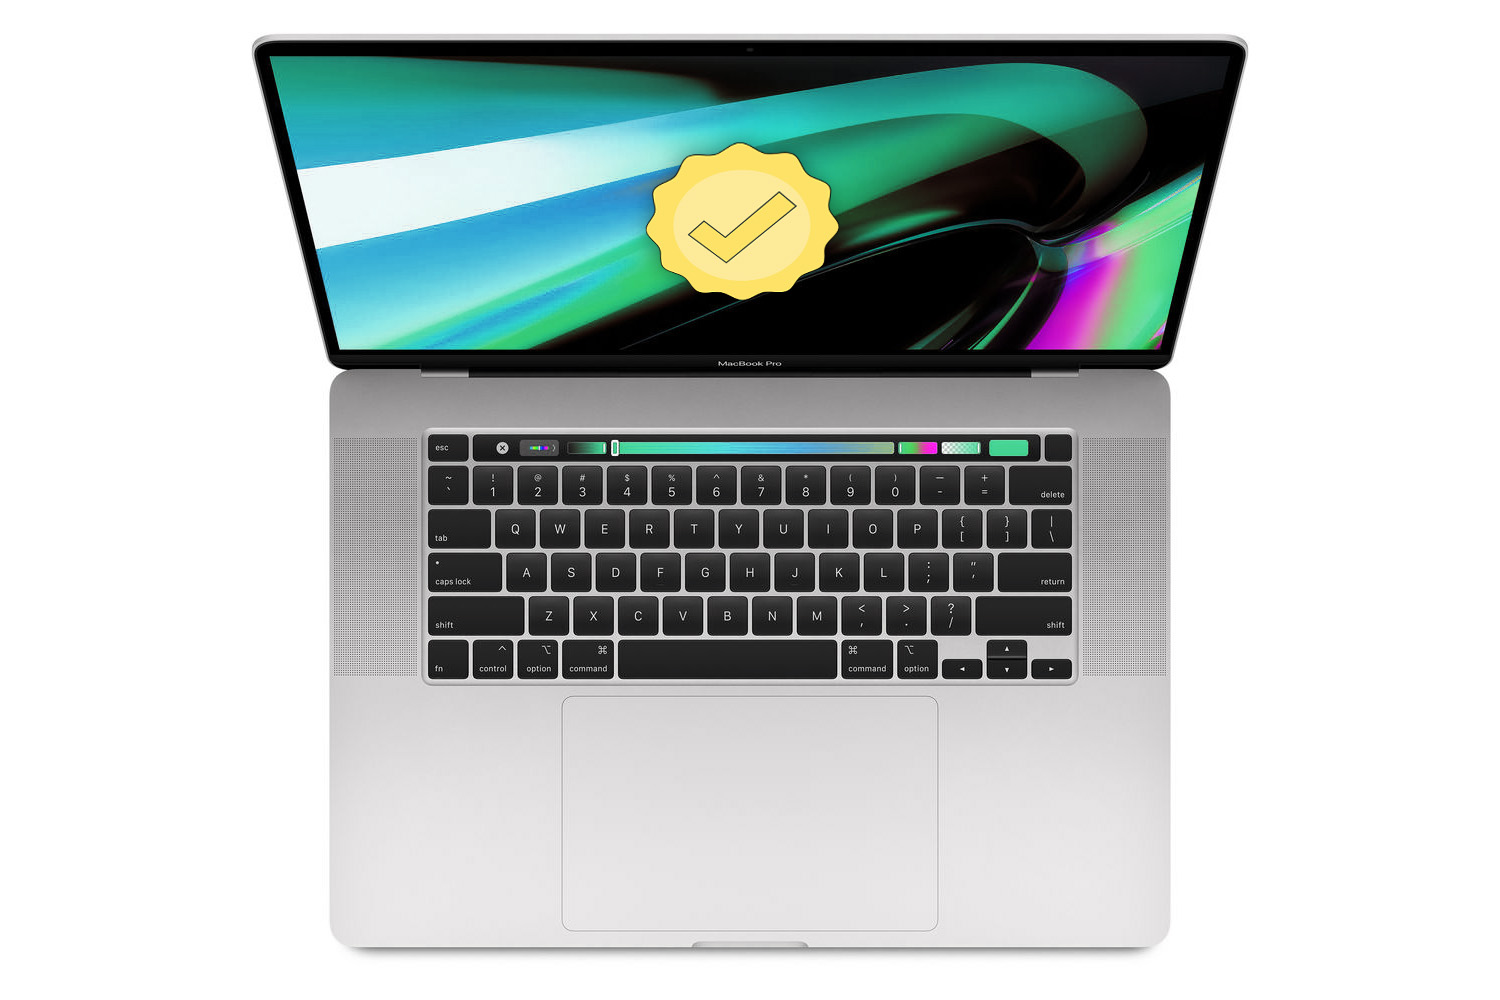 When Will the 16-inch MacBook Pro be Refurbished? (2019 Release)